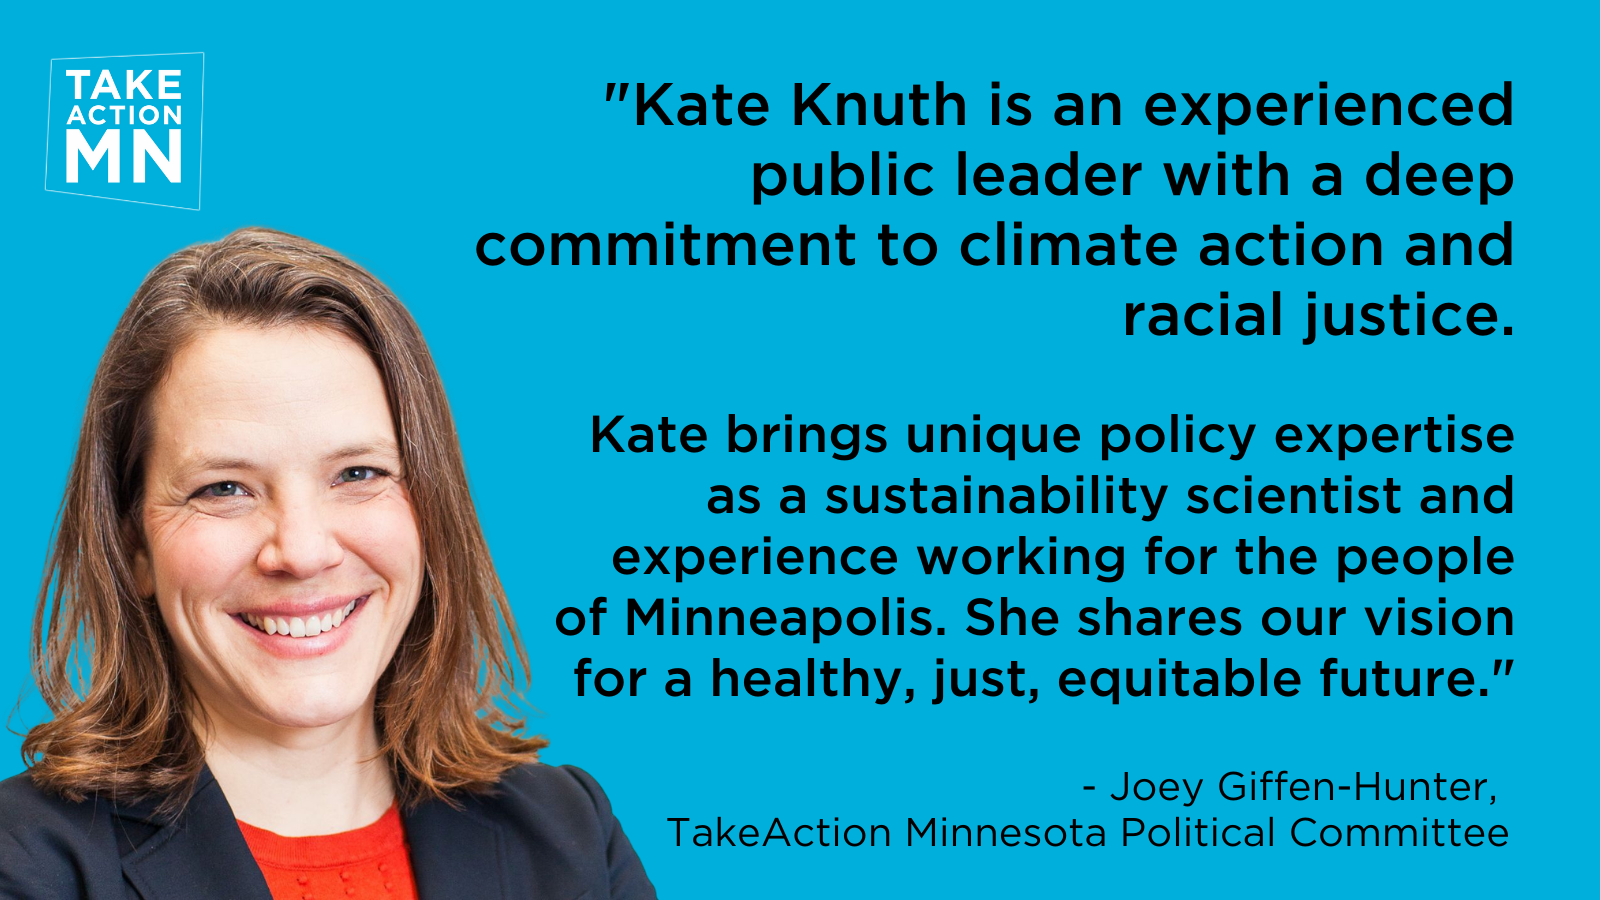 Kate Knuth, candidate for MPLS mayor